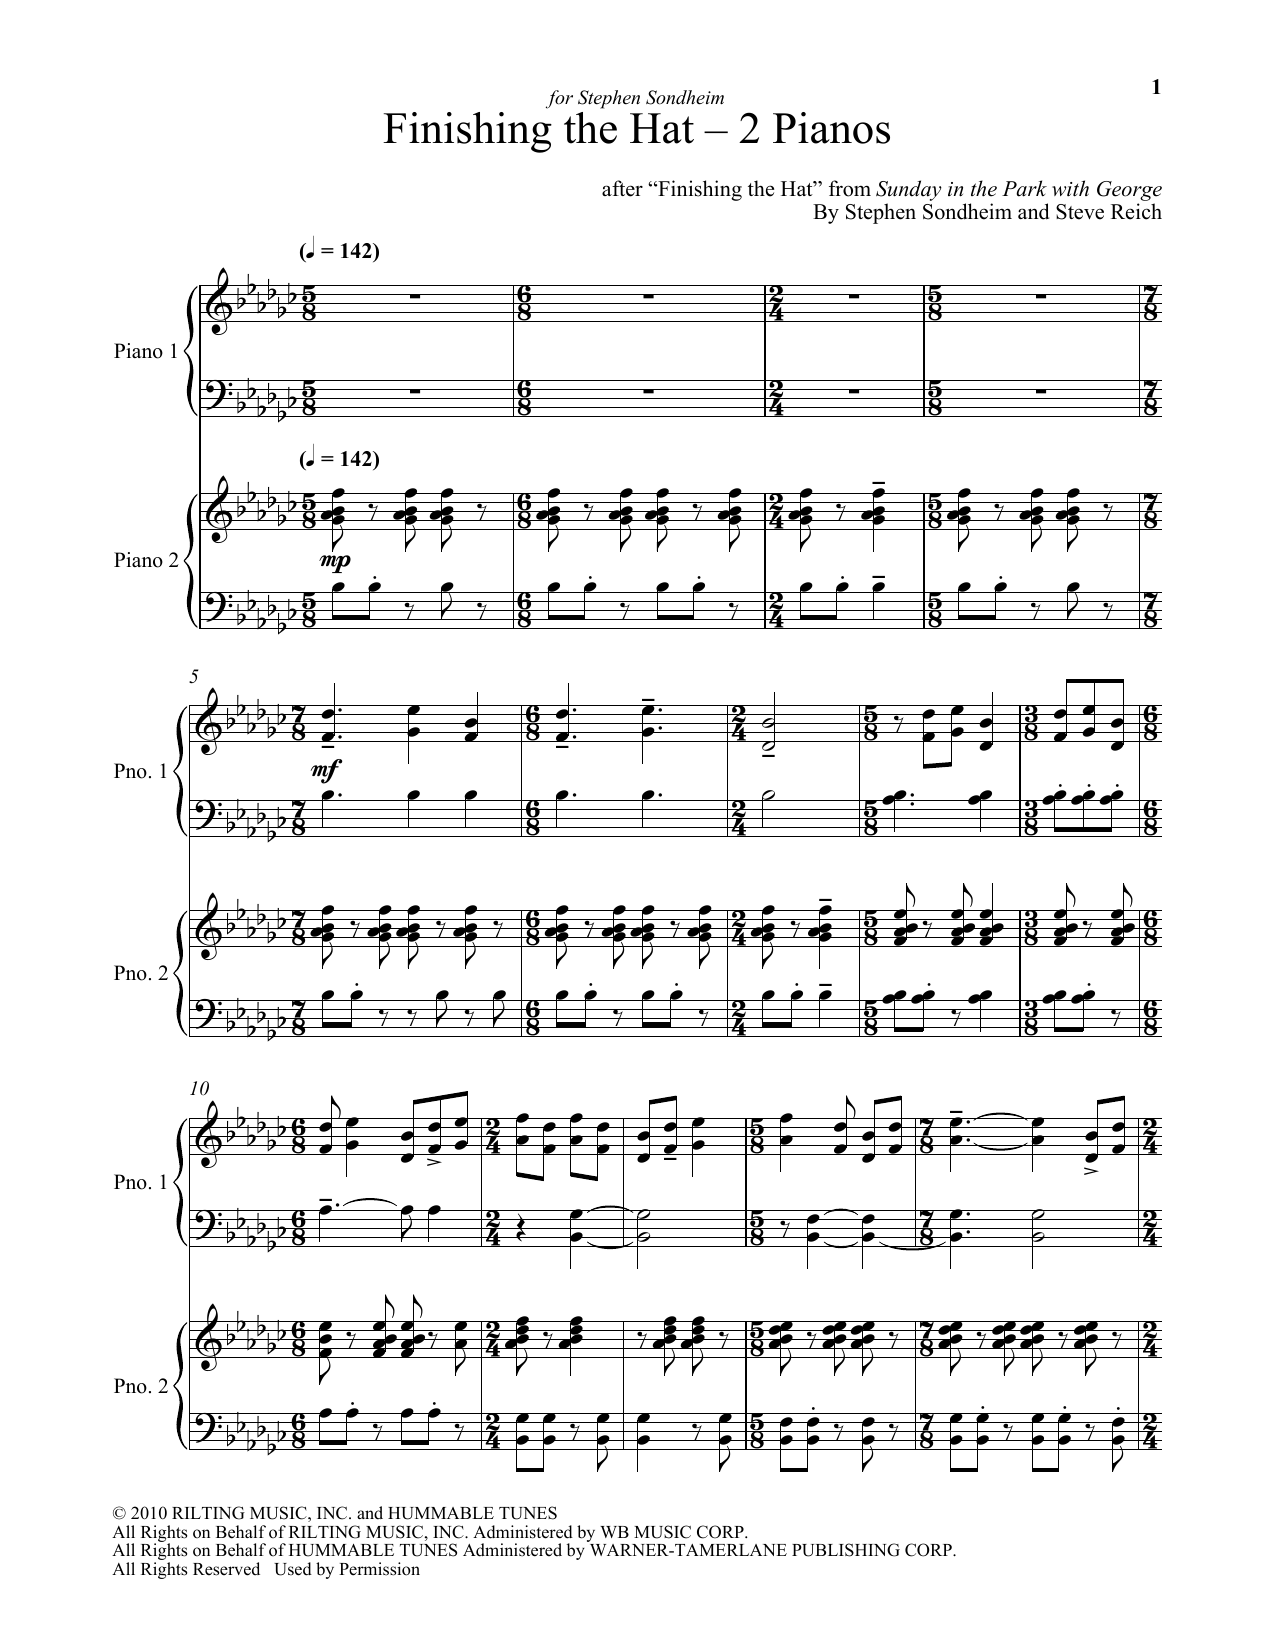 Steve Reich Finishing The Hat - Two Pianos sheet music notes and chords